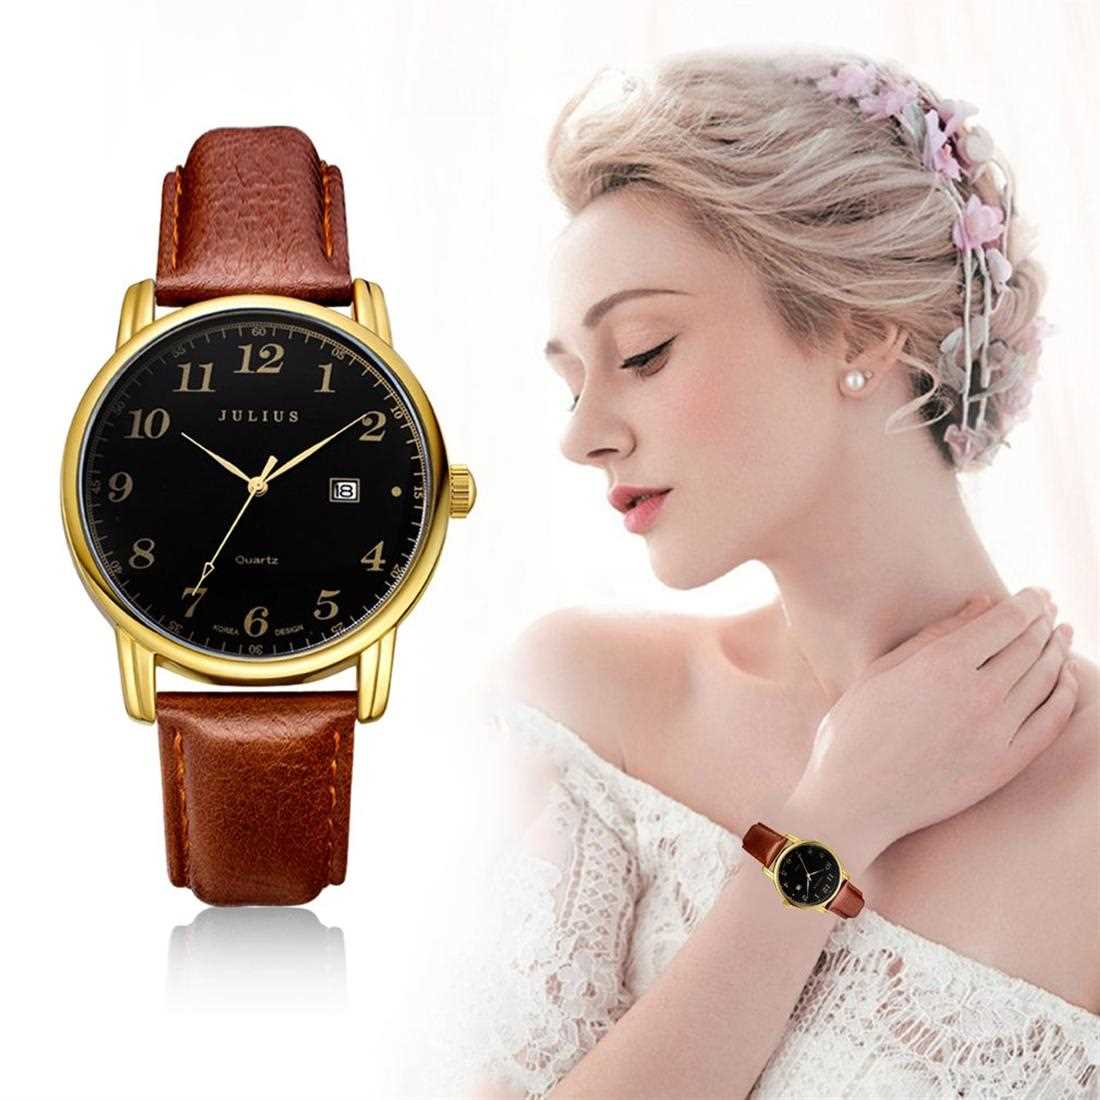 JULIUS JA-508 Fashion Quartz Watch Leather Strap ( Black Gold )